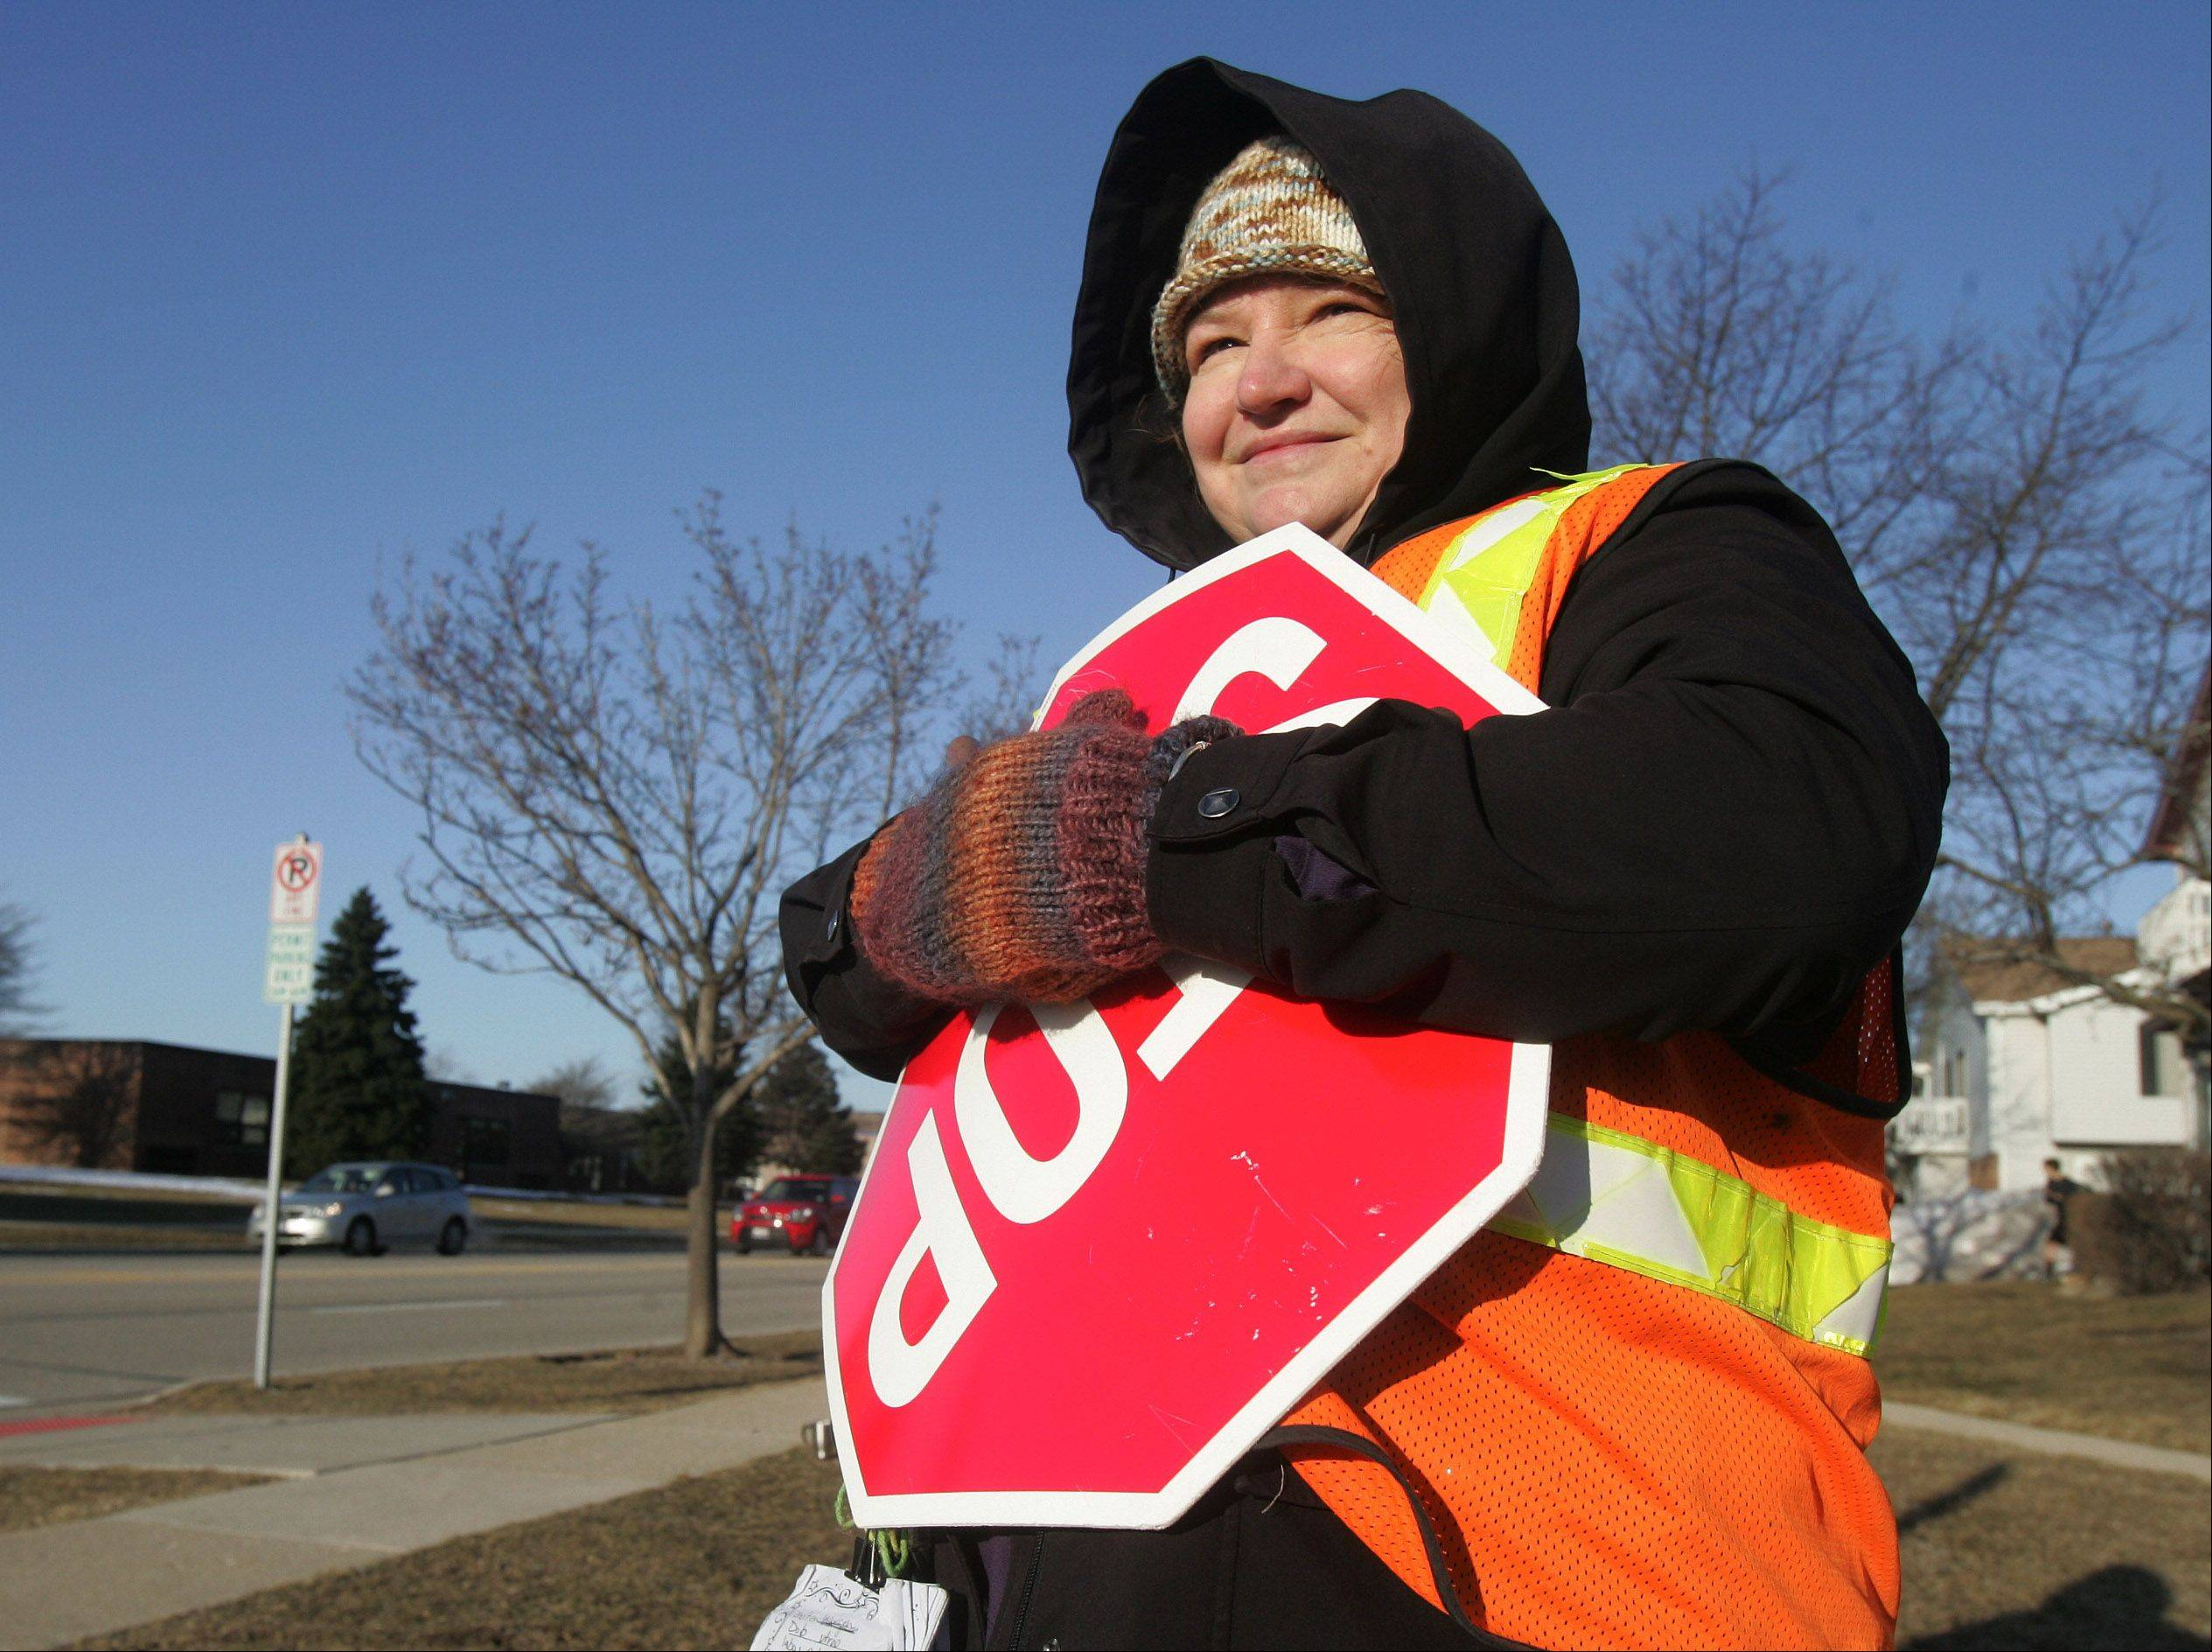 On the first day of Spring, crossing guard Sally Speer, of Mundelein, tries to keep warm as she stands in the frigid weather outside Hawthorn Elementary School in Vernon Hills Wednesday.